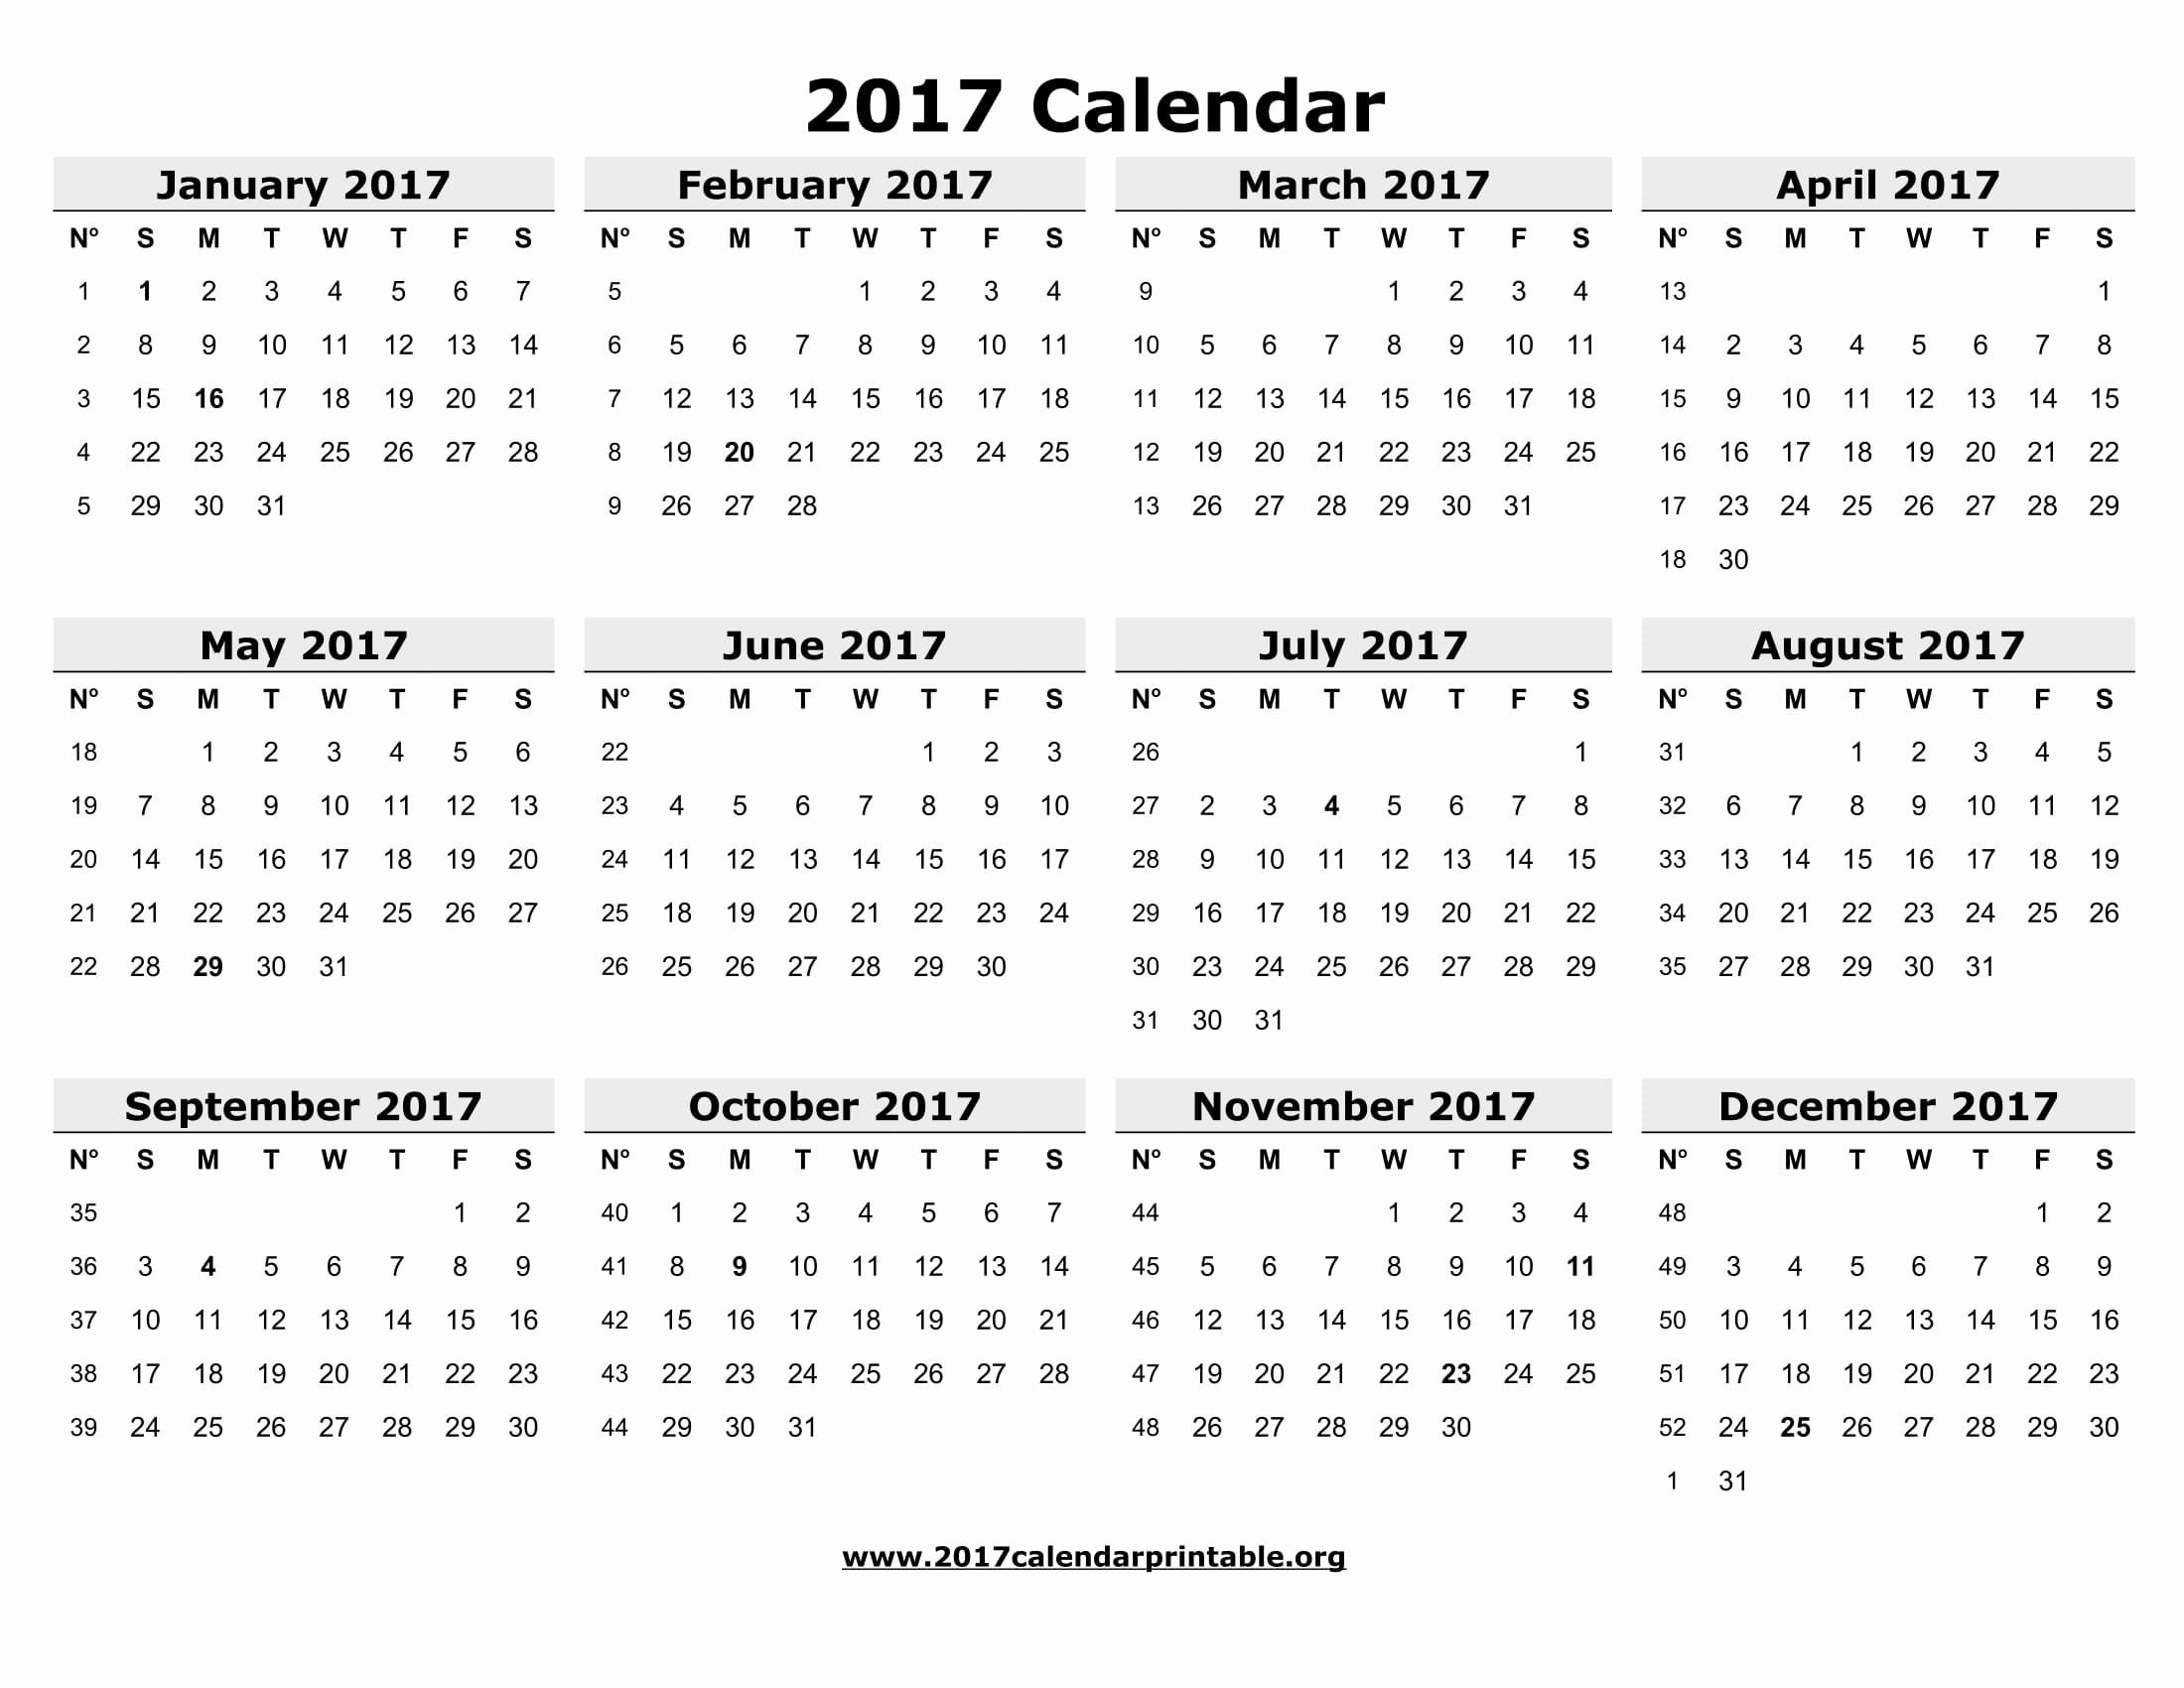 2017 Monthly Calendar Free Printable Awesome 12 Month Calendar 2017 Printable with Notes